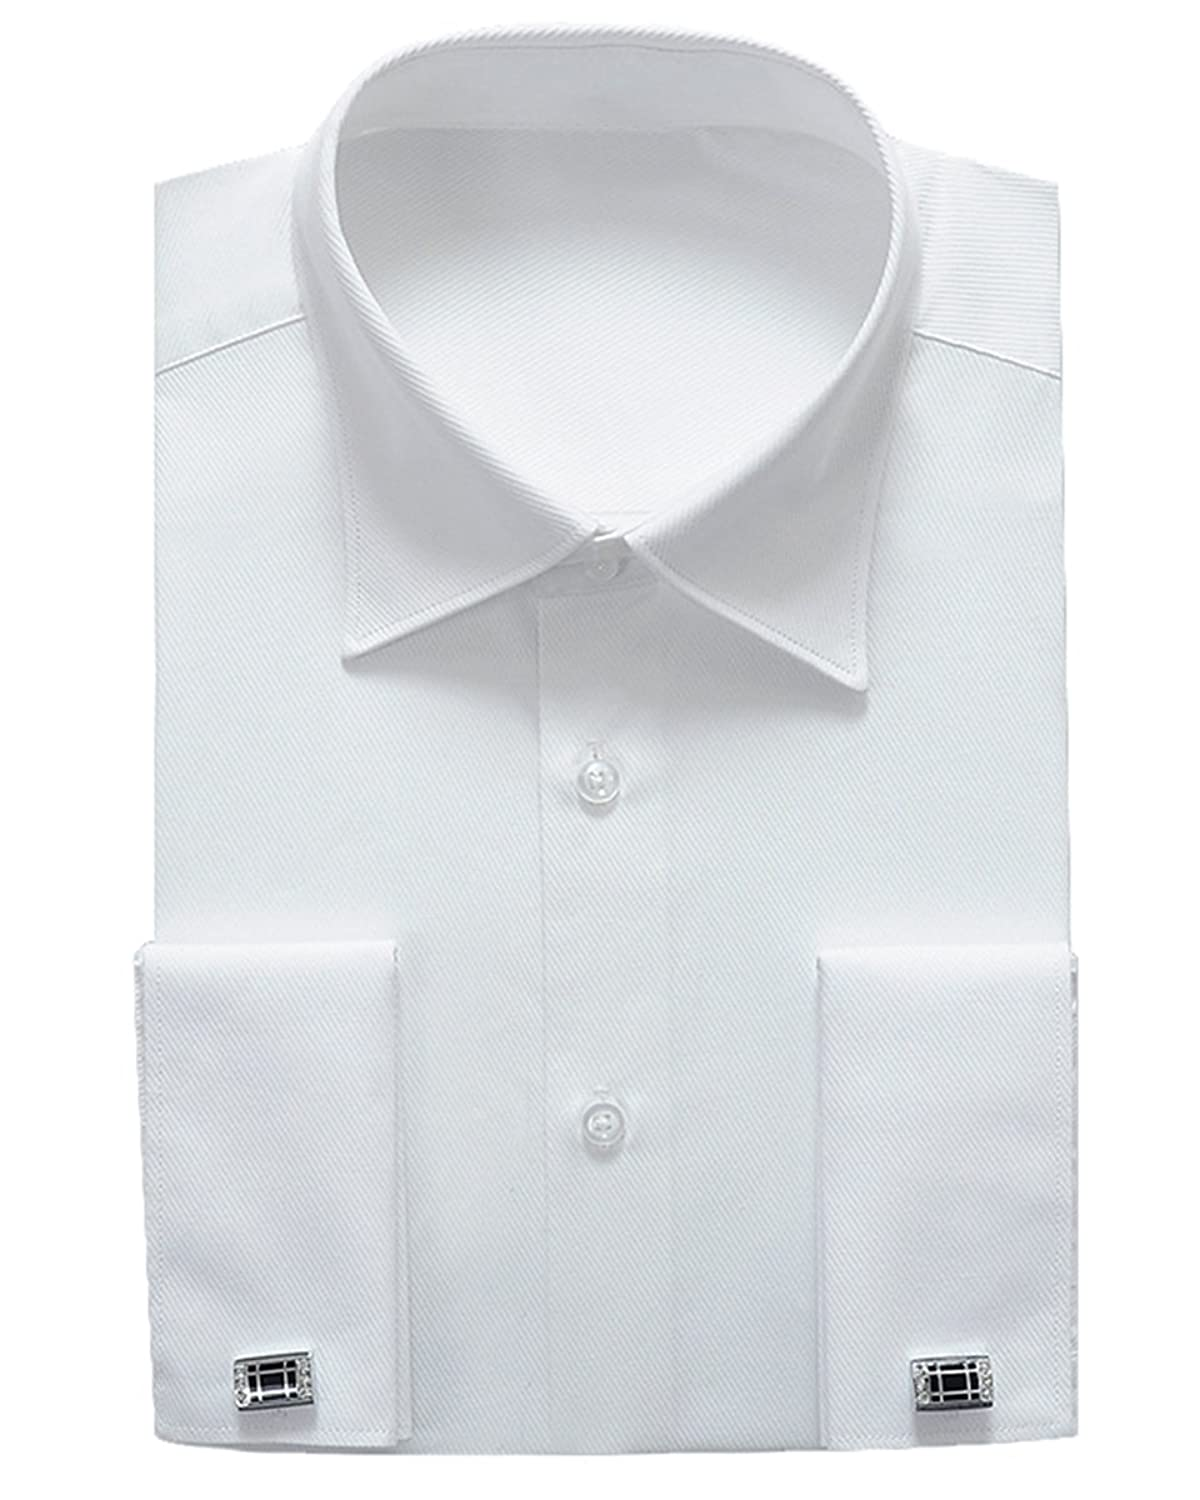 Alimens & Gentle French Cuff Regular Fit Dress Shirts (Cufflink included)  (16.5